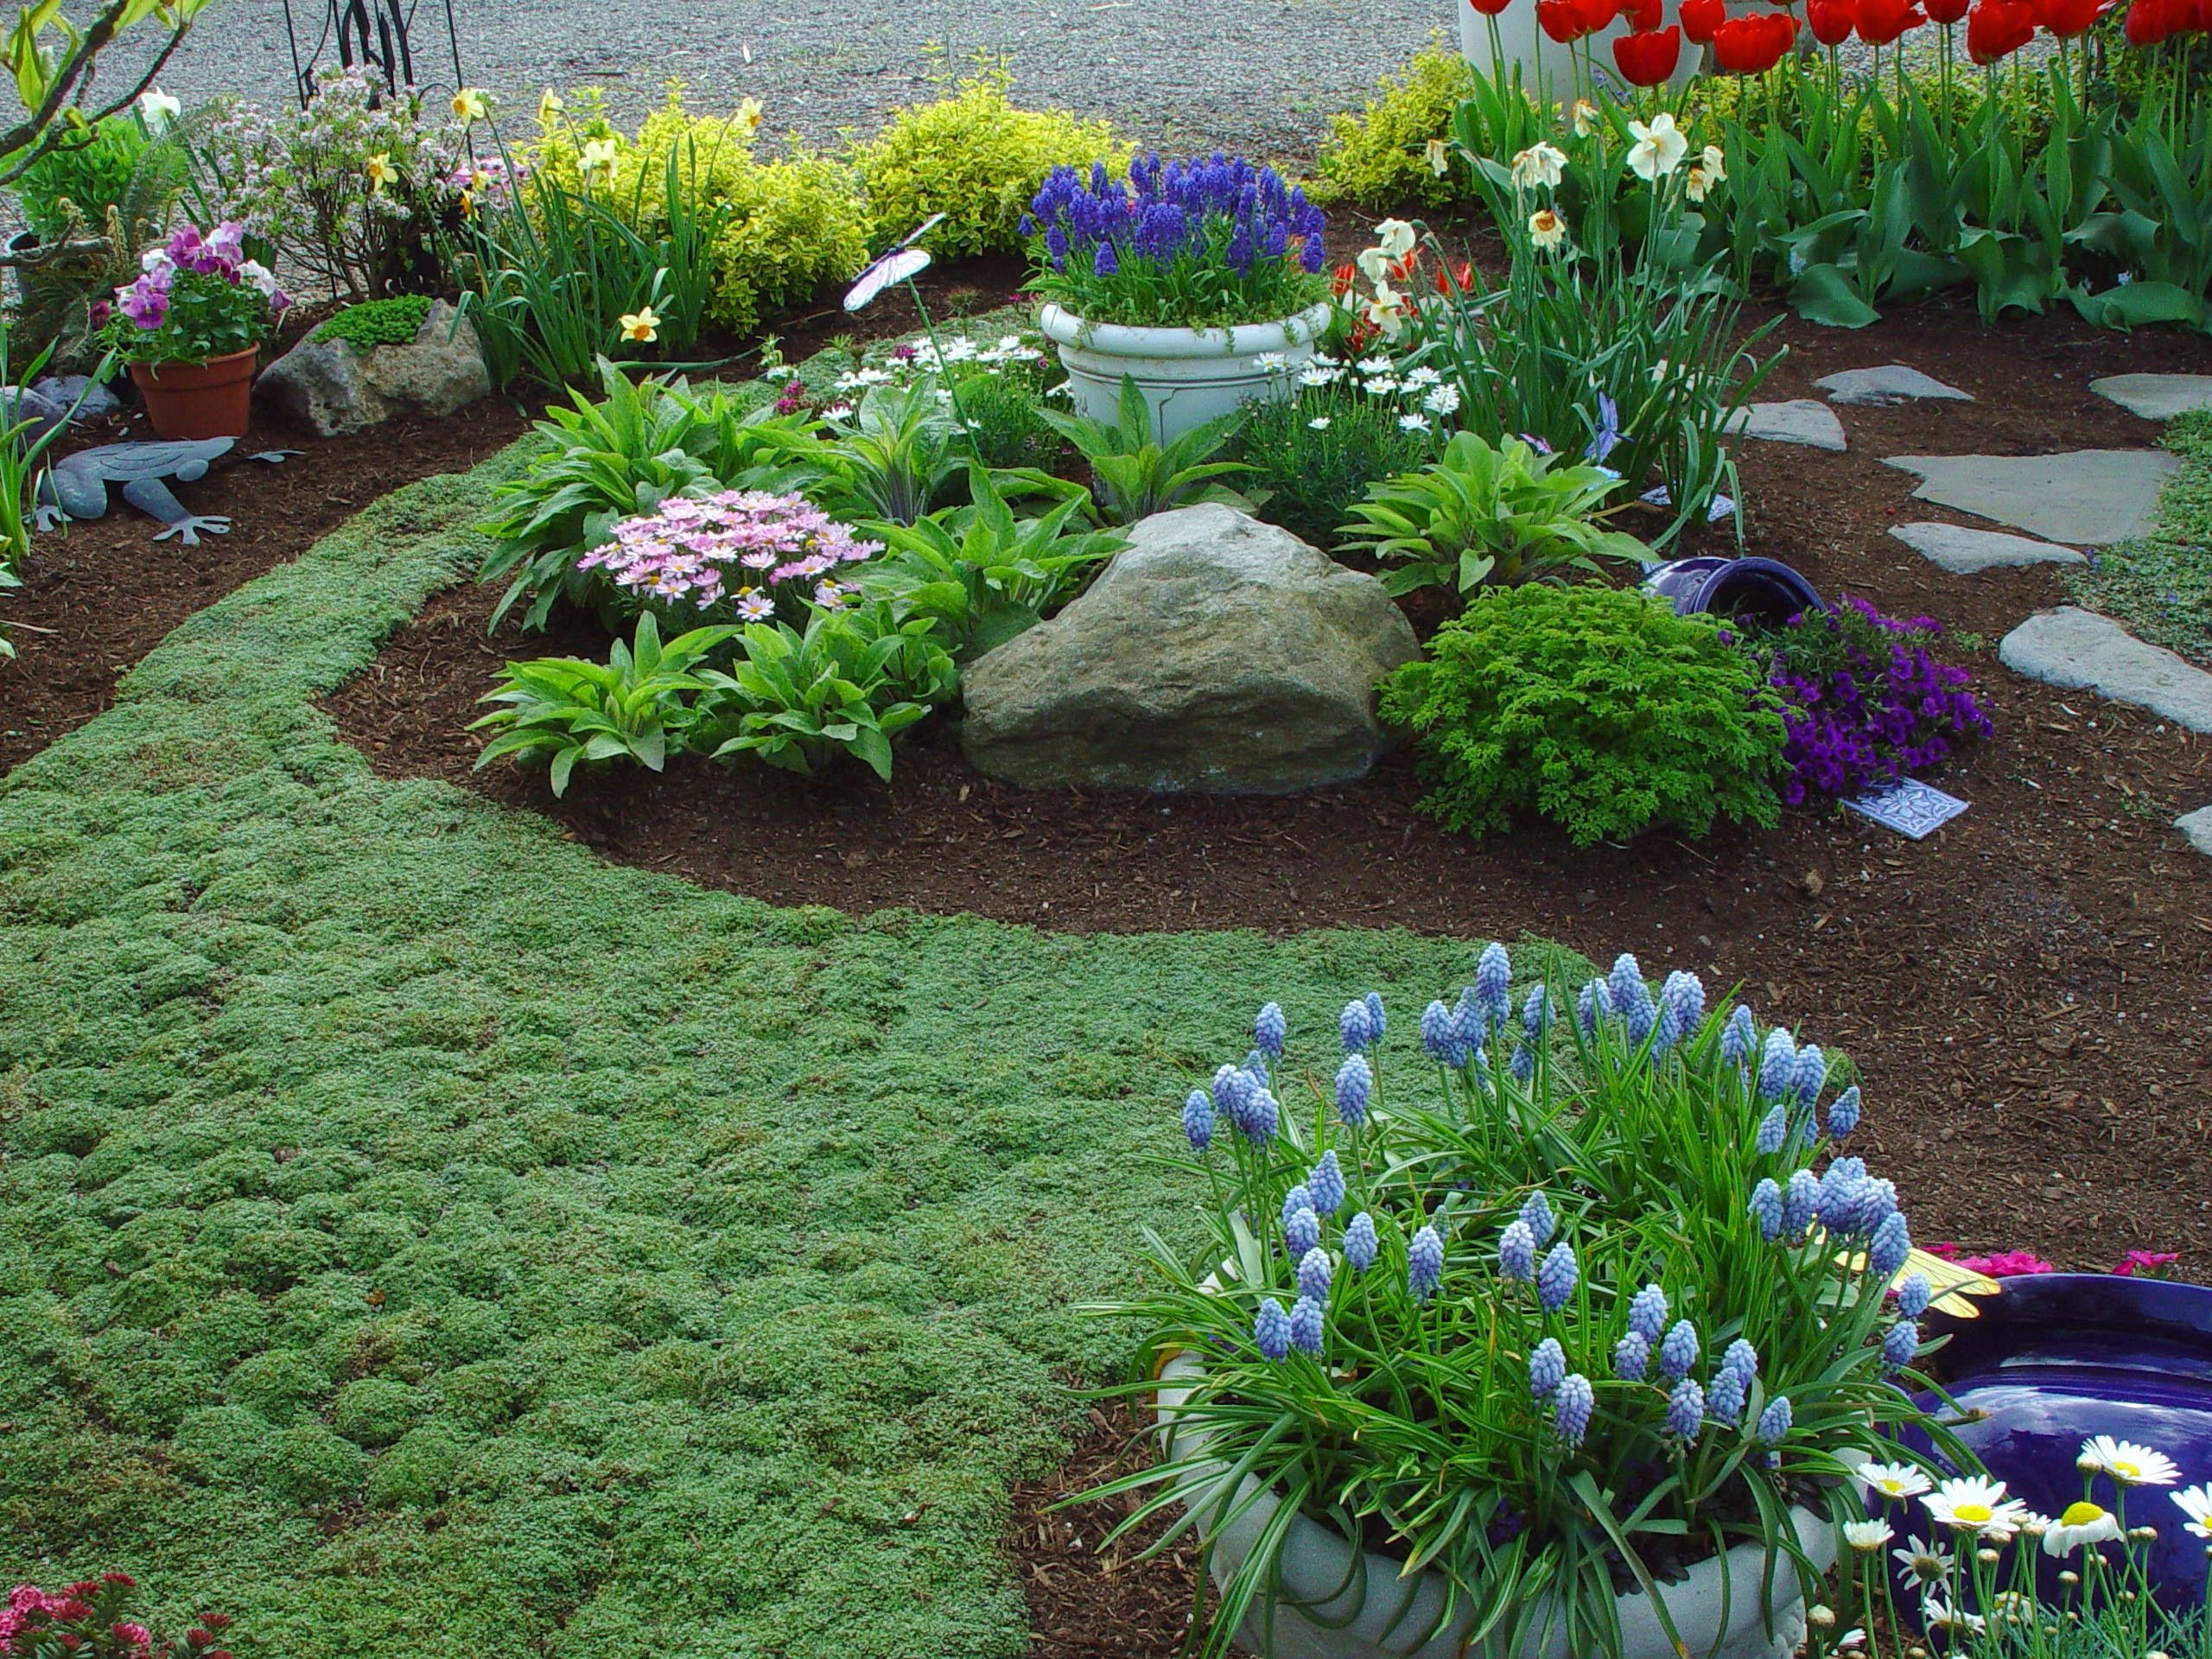 Ground cover gardening ideas pinterest for Landscaping ground cover plants